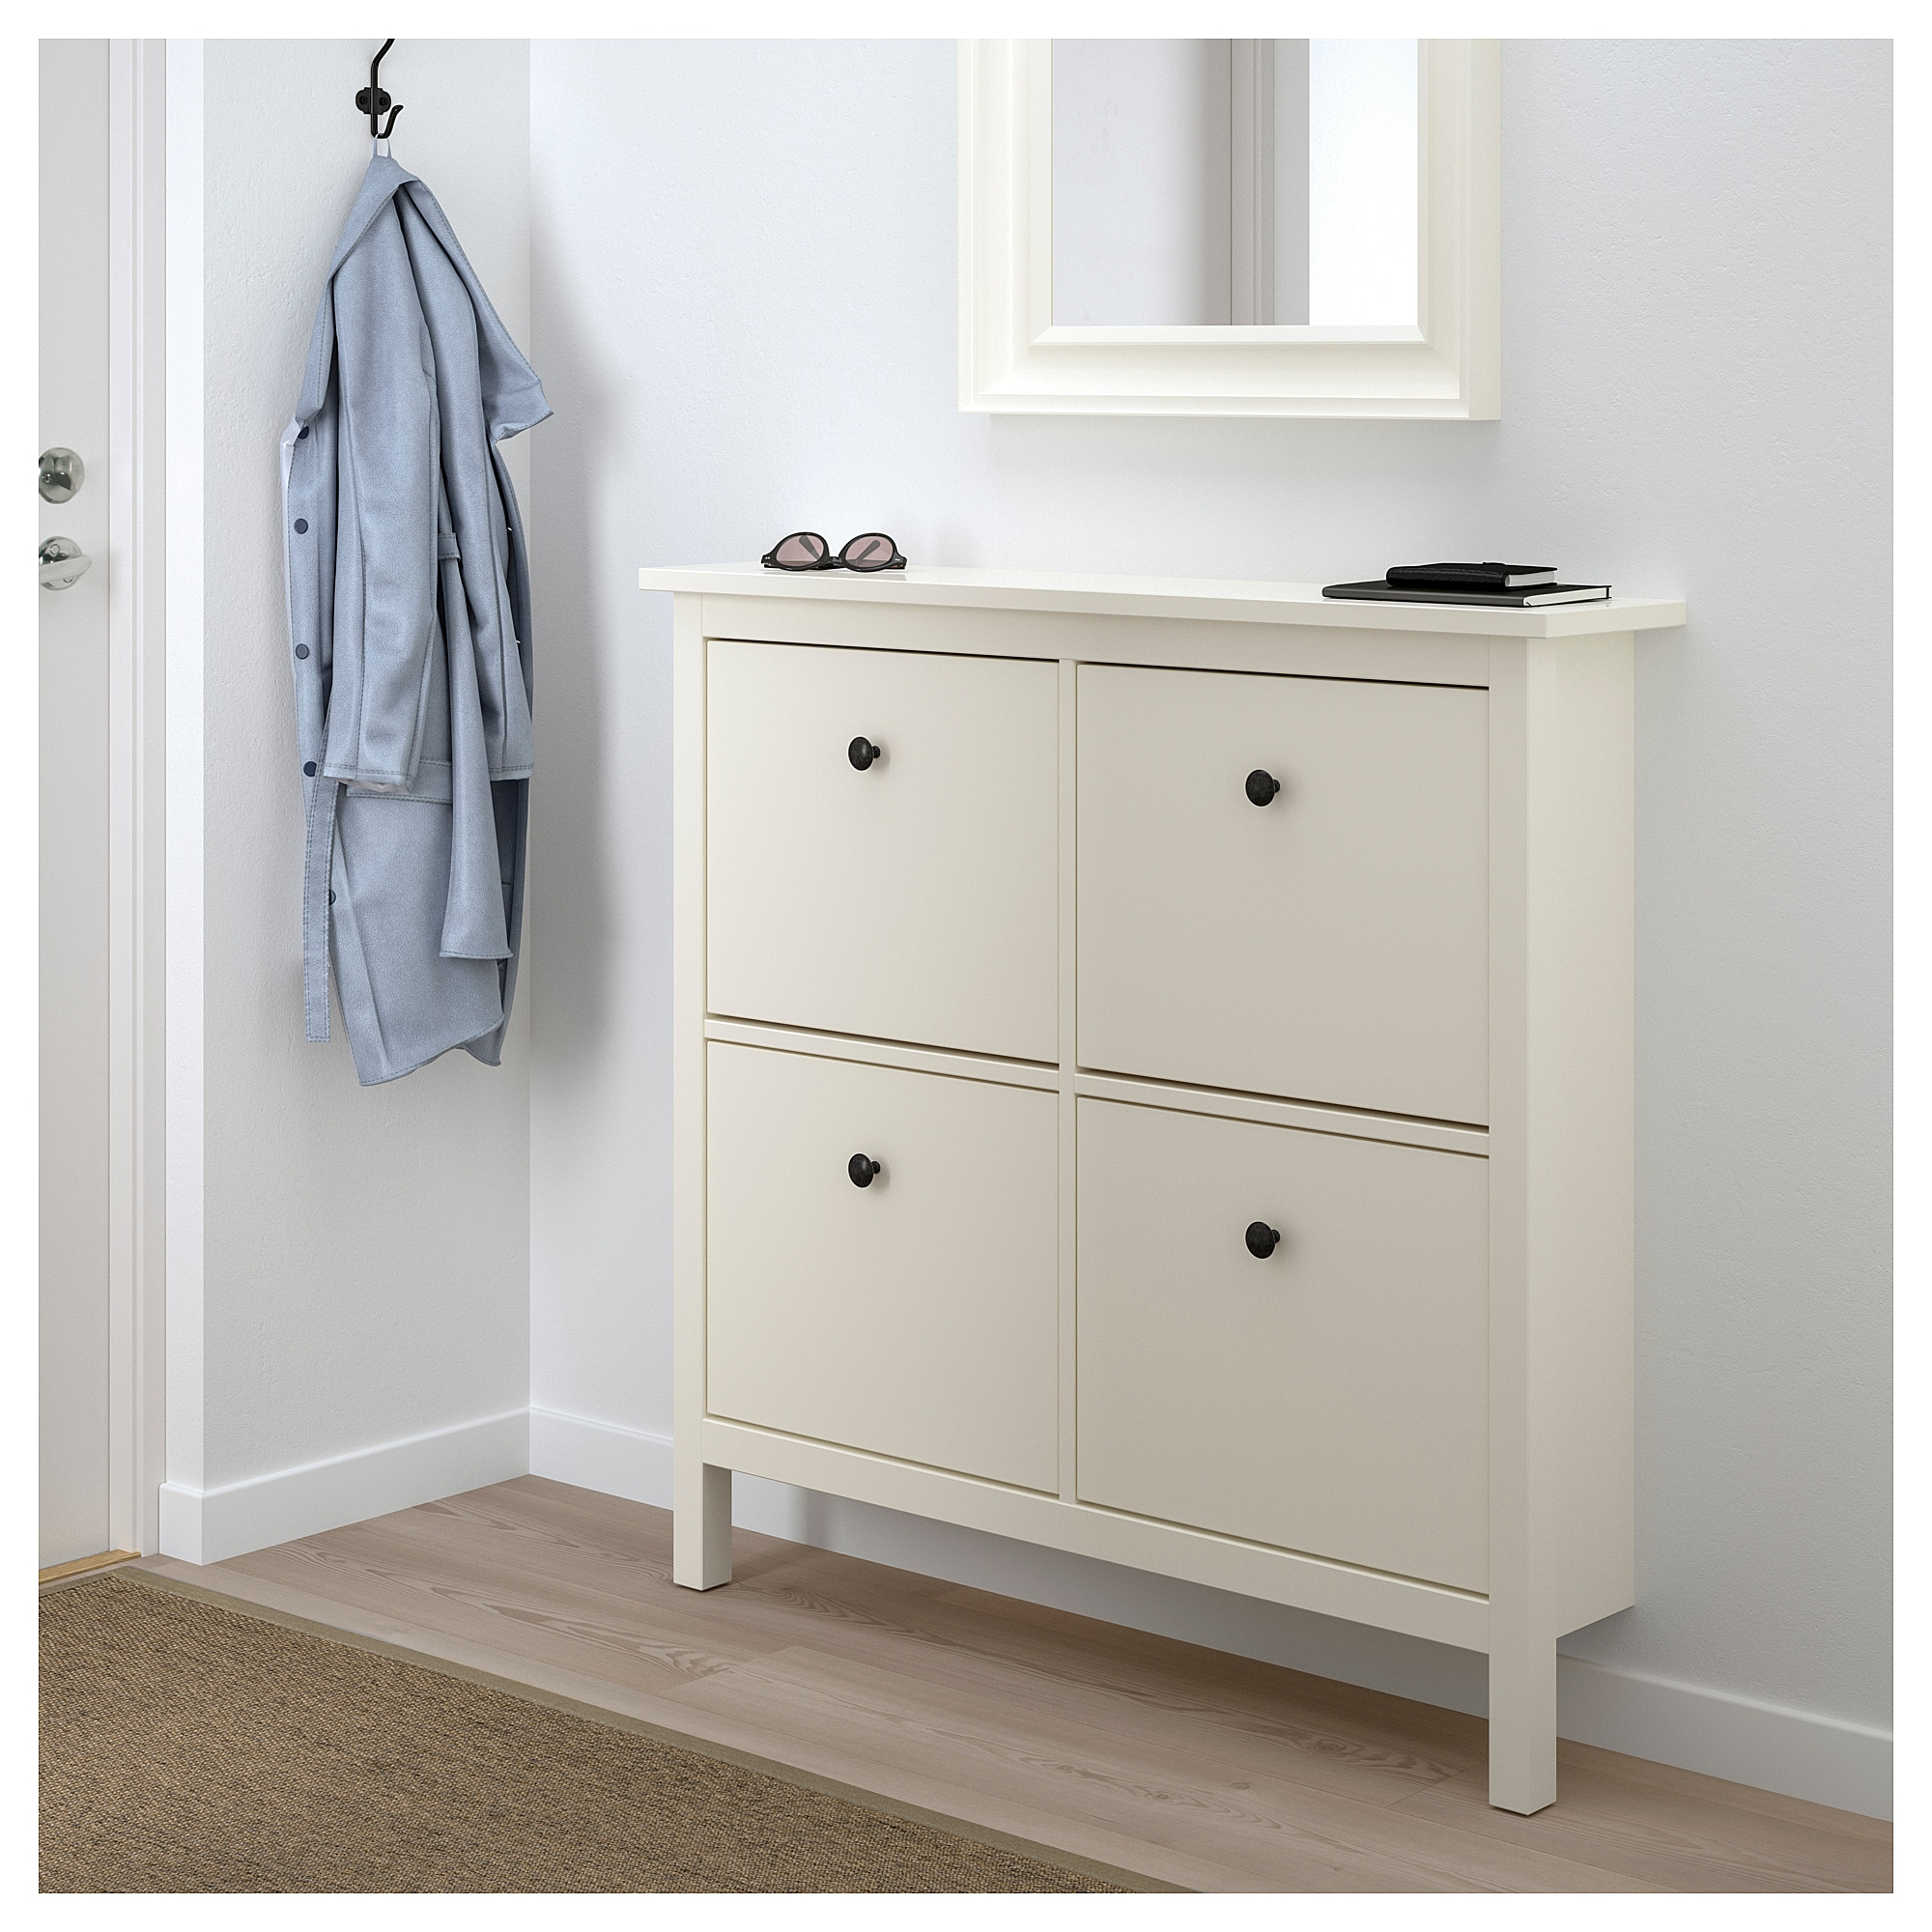 Shoe cabinets four drawer 27 pairs - Shoe Cabinets Four Drawer 27 Pairs 49